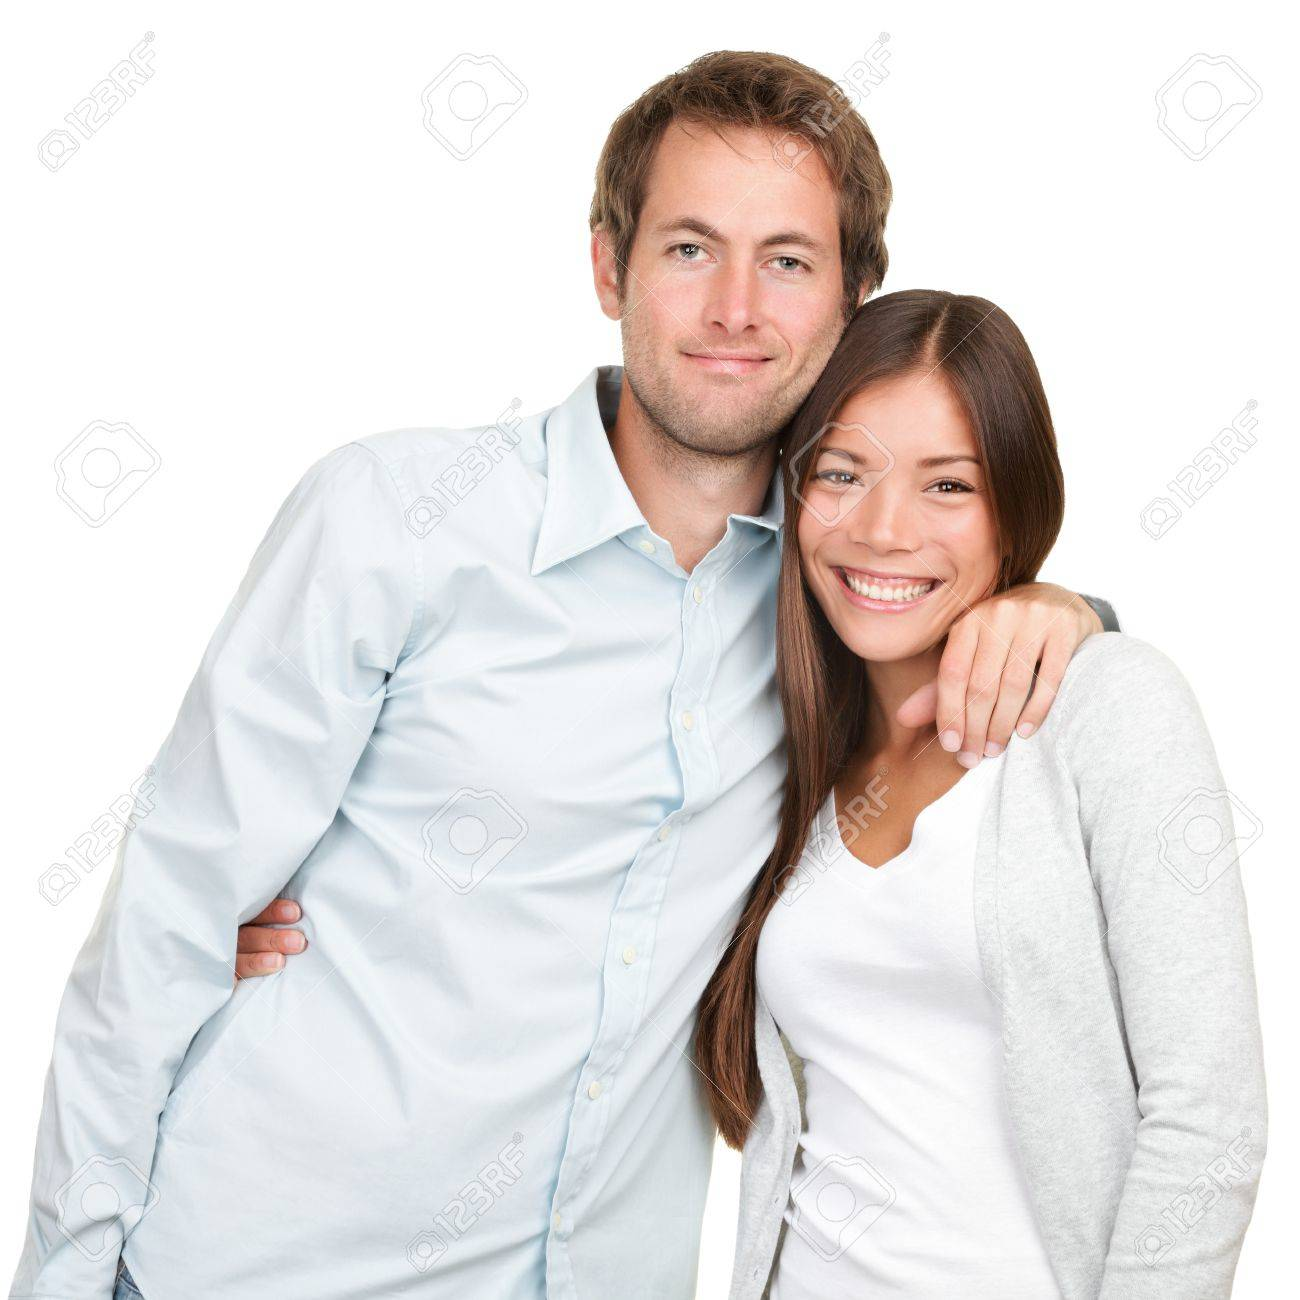 Happy young couple. Portrait of cheerful multiracial couple smiling looking at camera. Asian woman, Caucasian man. Standard-Bild - 16793346